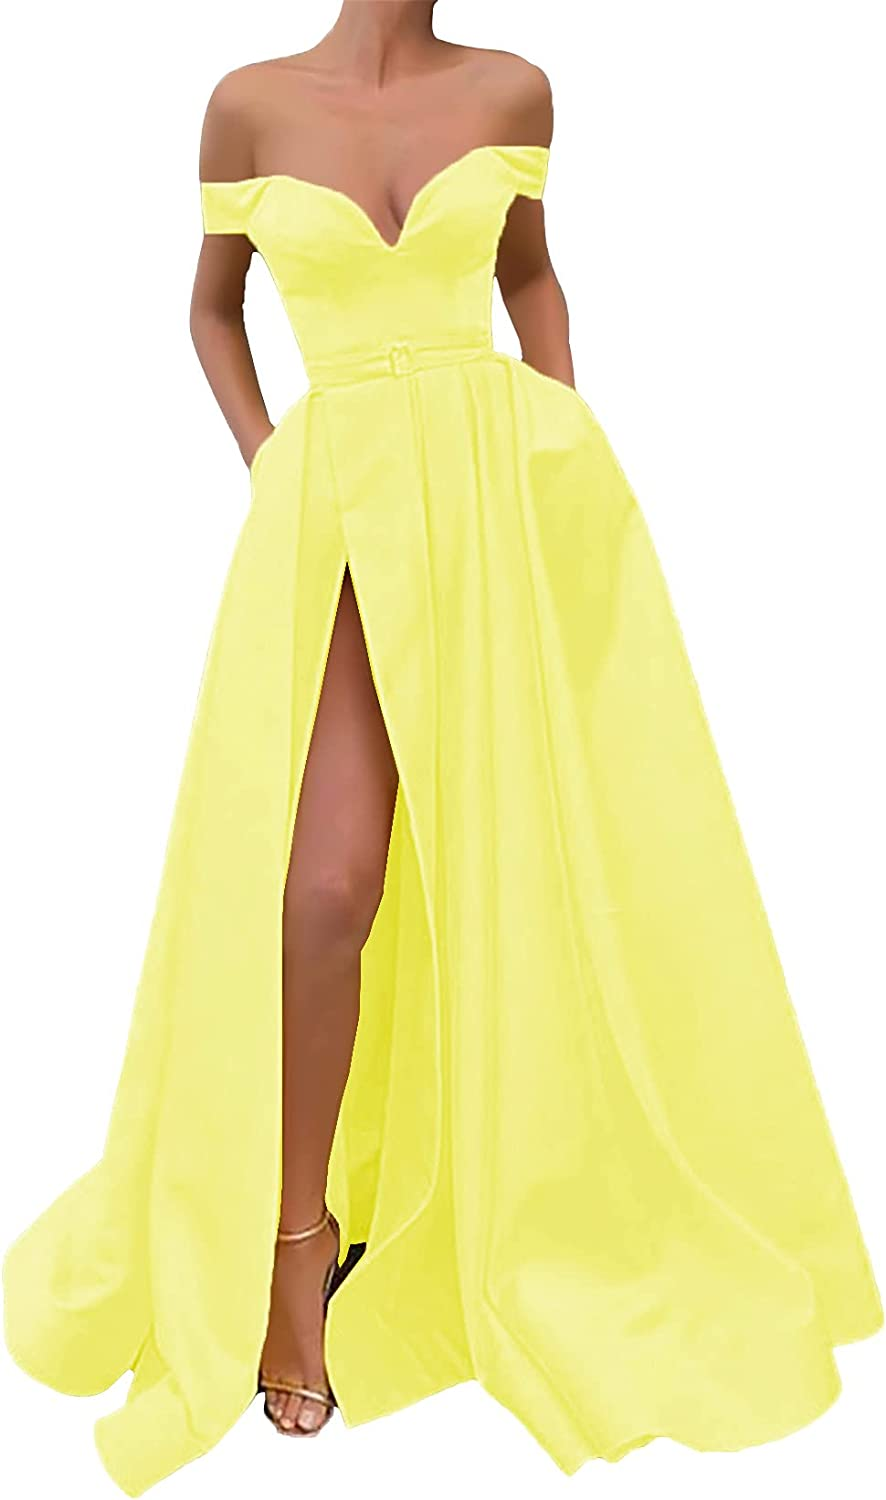 Prom Max 78% OFF Dress Long for Women Off Satin The Gown Shoulder Side Our shop OFFers the best service Ball